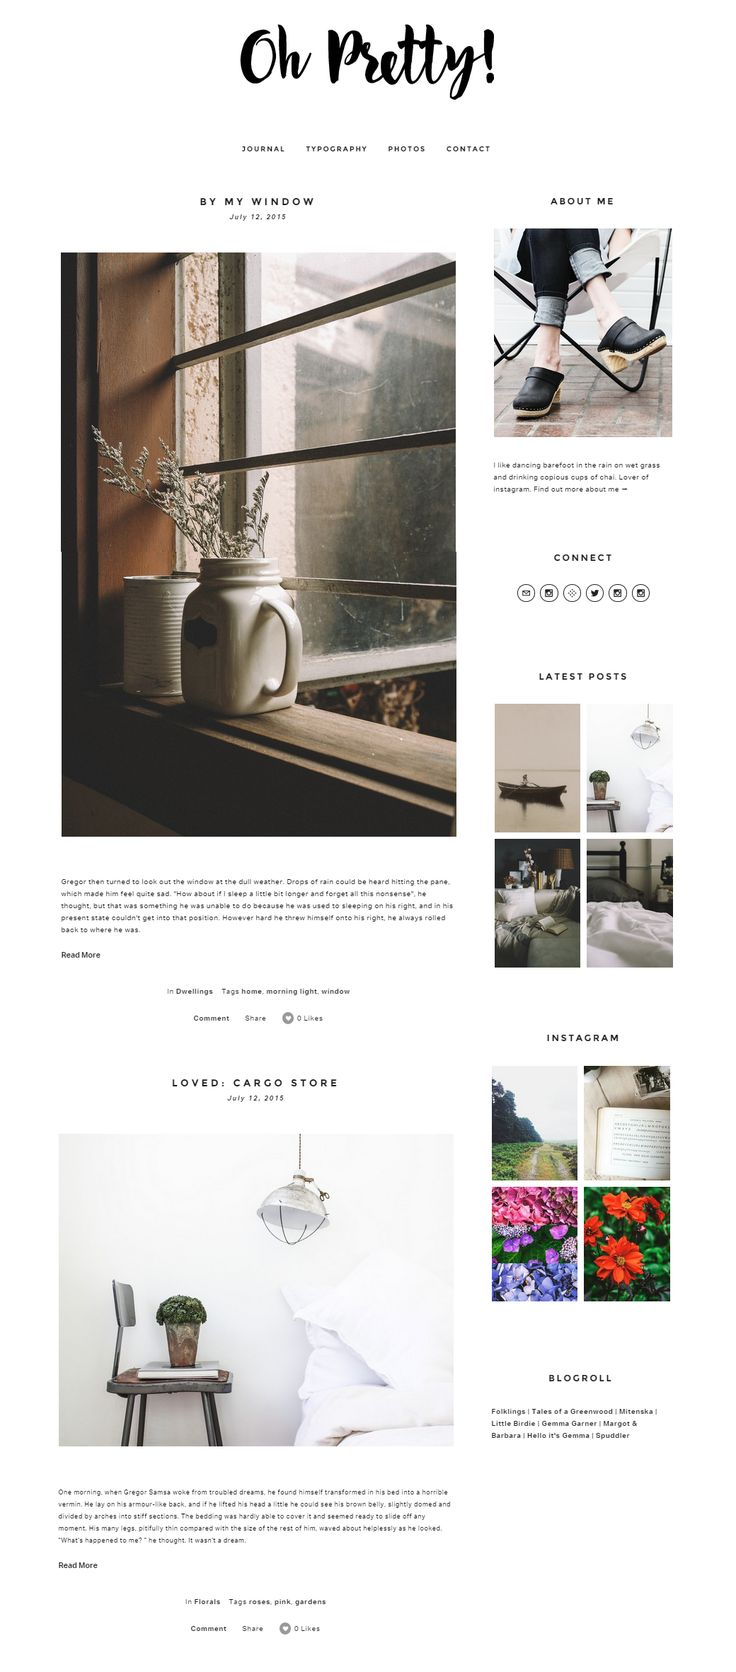 New: Squarespace theme designs for bloggers http://mammasaurus.co.uk/journal/new-squarespace-theme-designs-for-bloggers